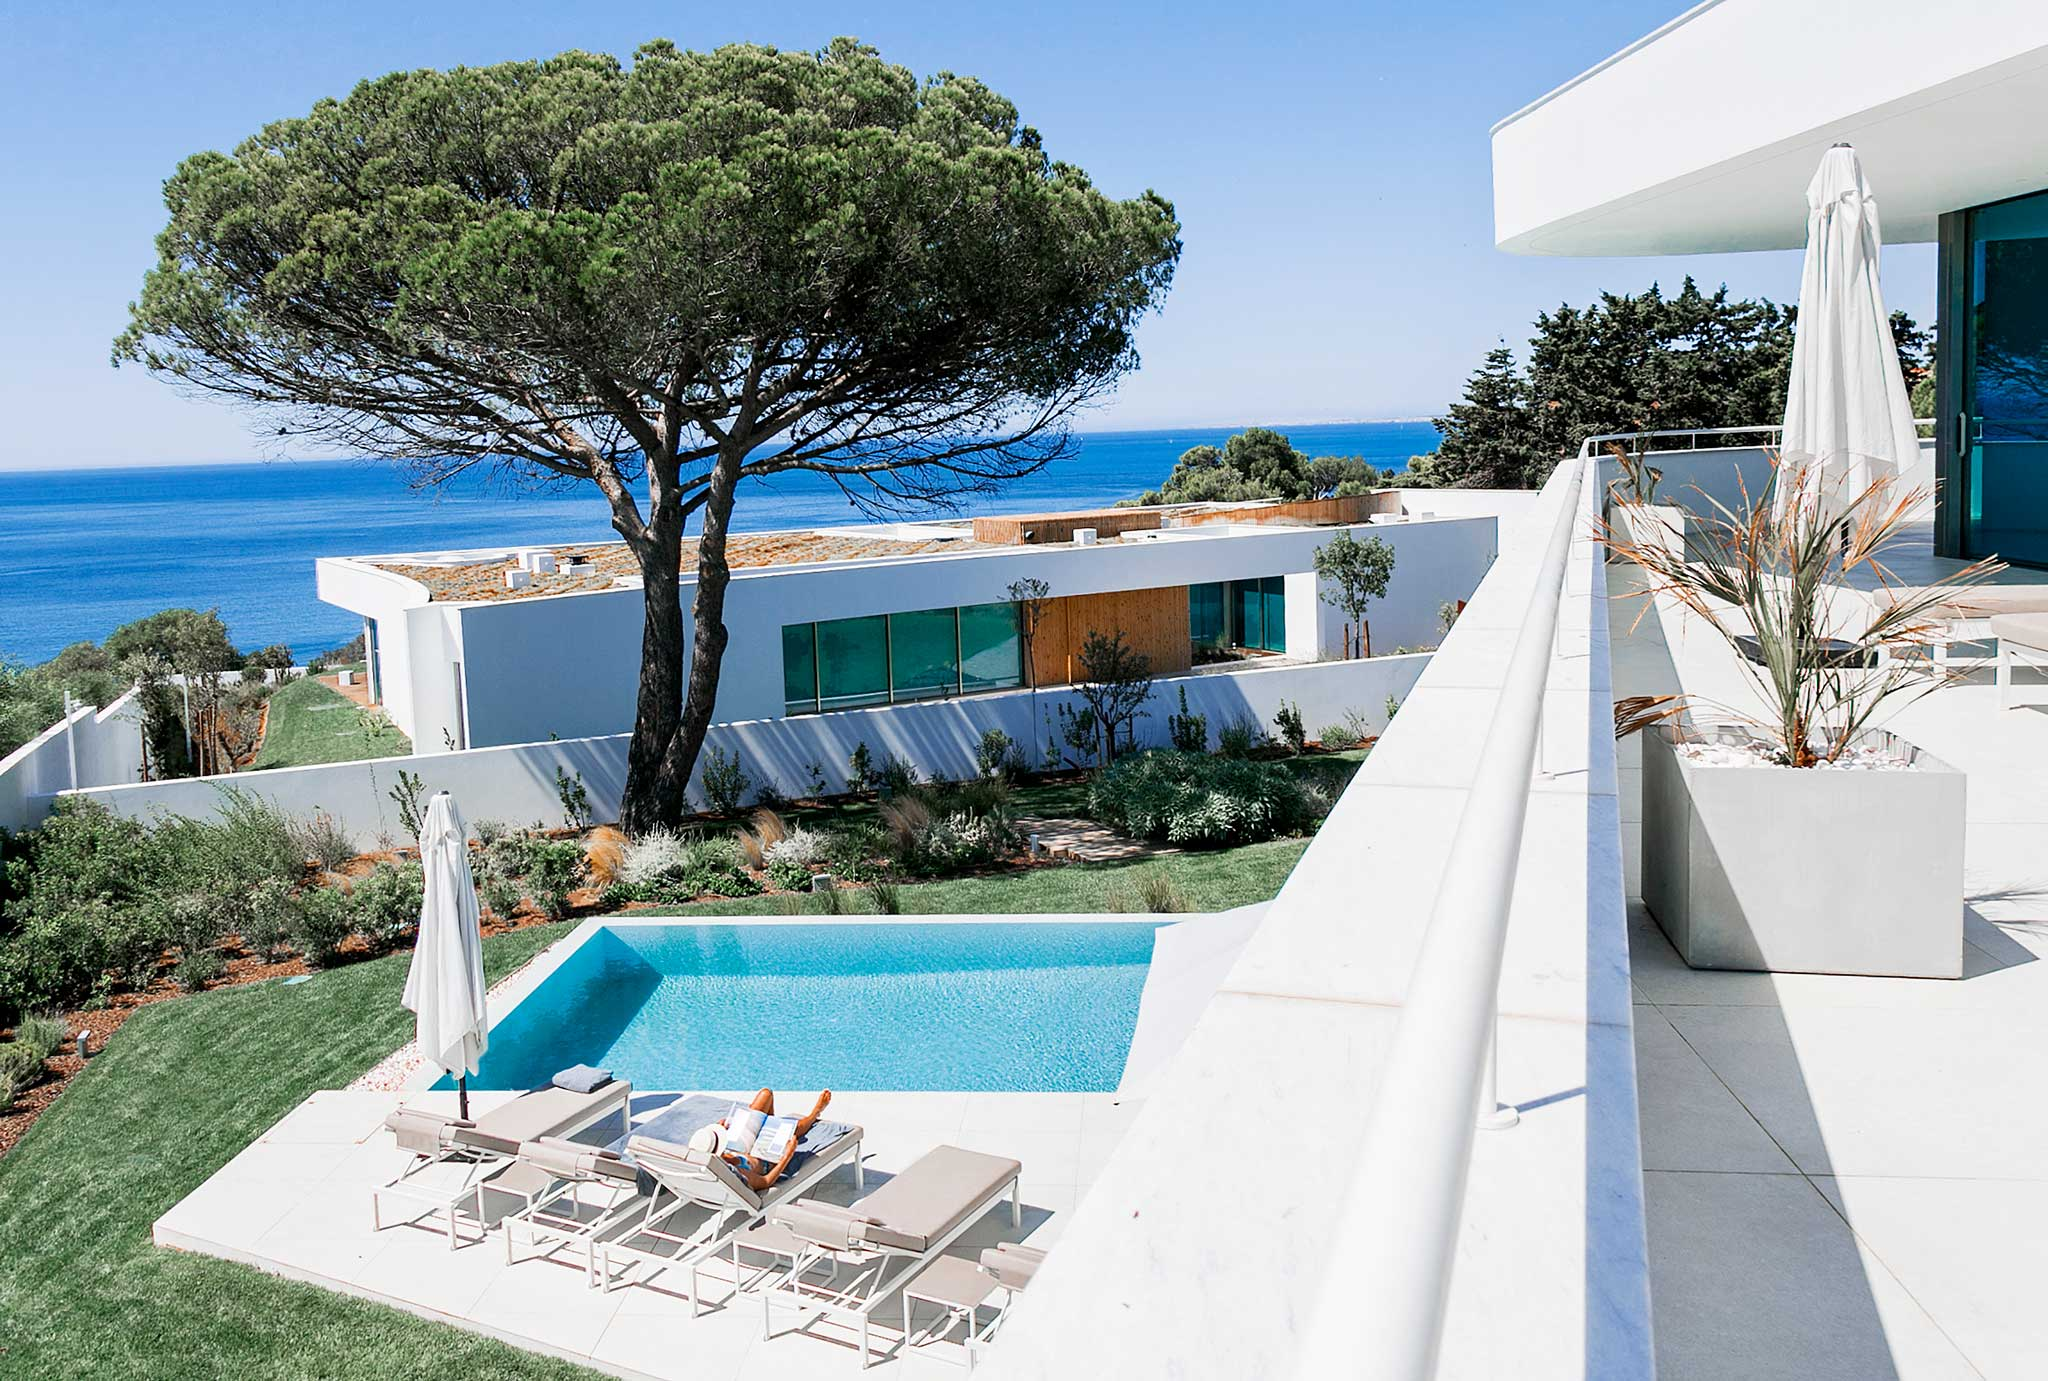 Looking out on the Atlantic ocean and an infnity pool with two white luxury villas in the picture at Lux Mare